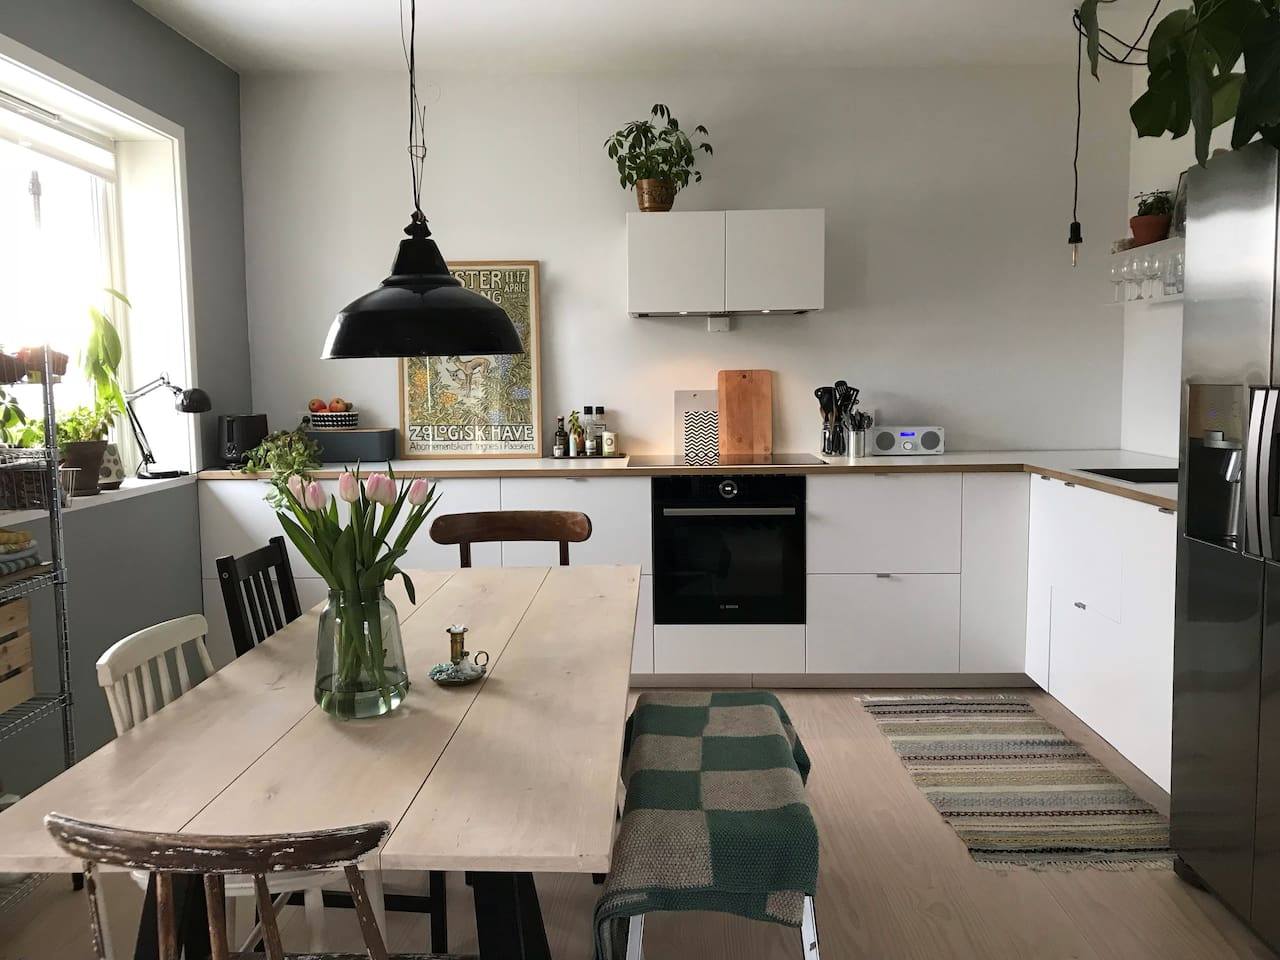 Open kitchen area with dining table - sunny from early morning!